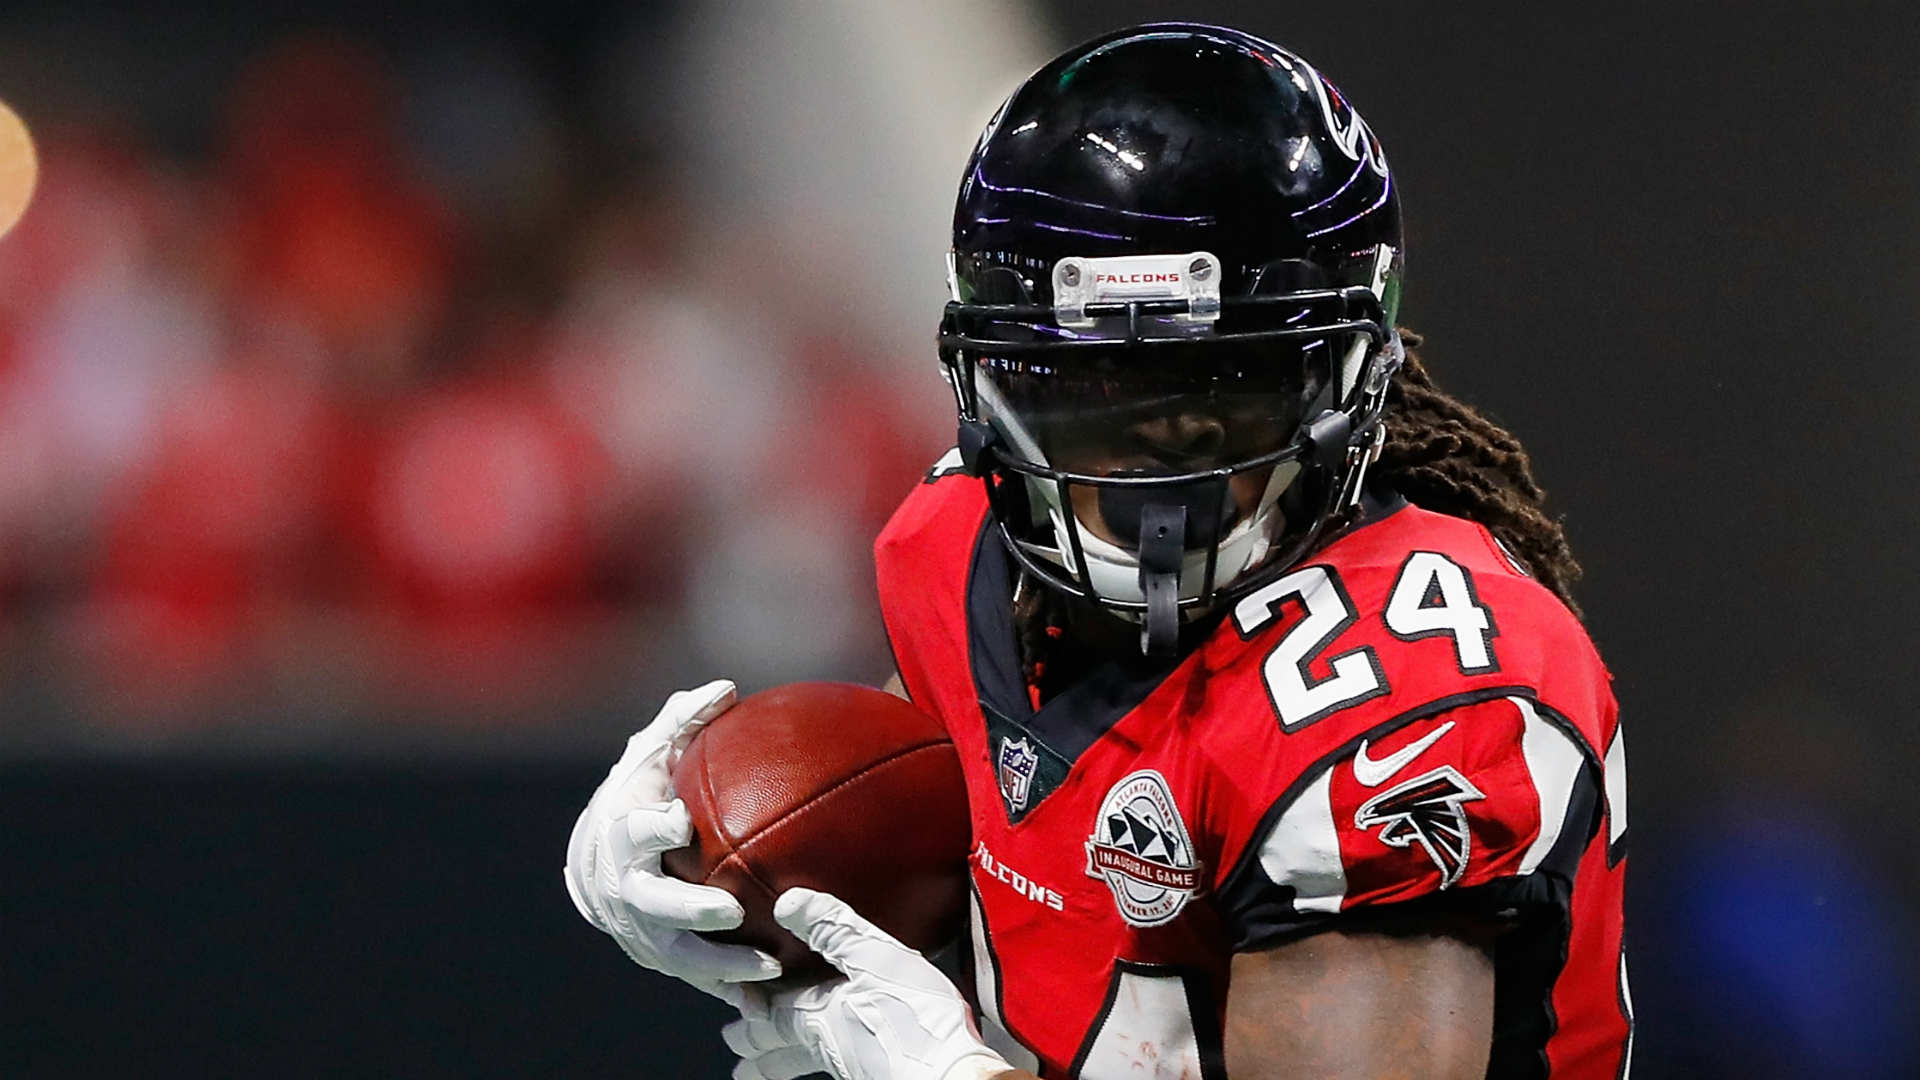 Falcons' Devonta Freeman 'got stronger' from brutal 2018 season